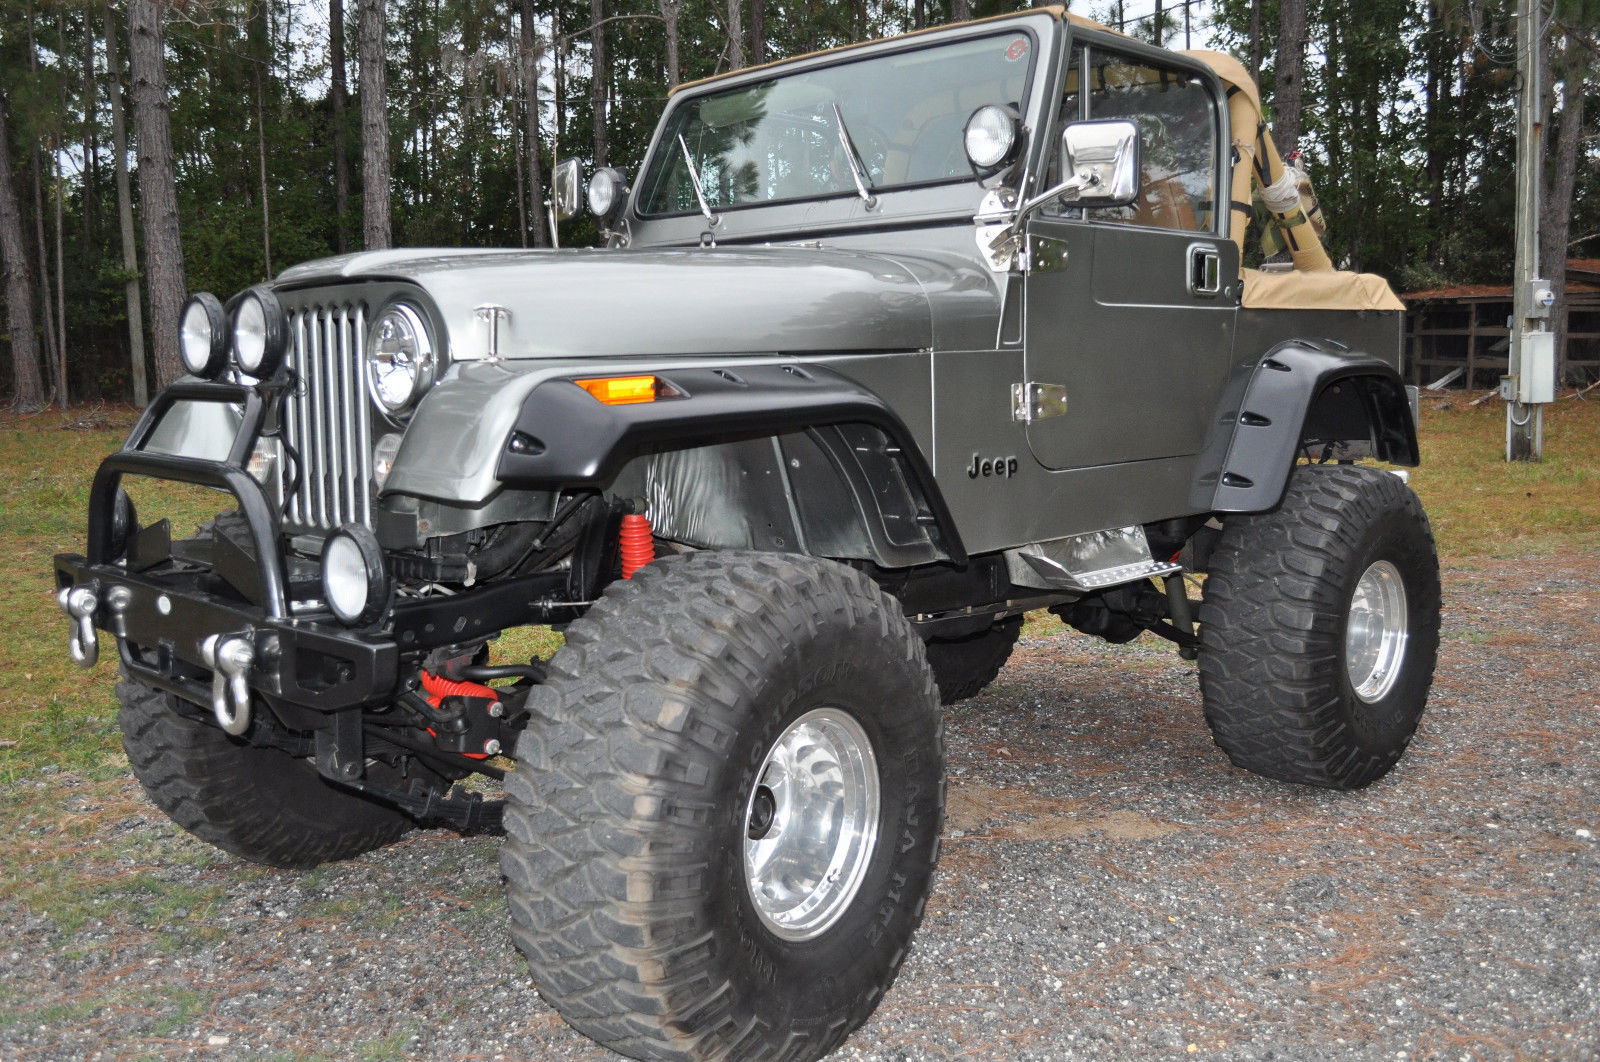 1986 Jeep CJ CJ7 & 1986 Jeep CJ7 Base Sport Utility 2-Door 4.2L - Classic Jeep CJ 1986 ...